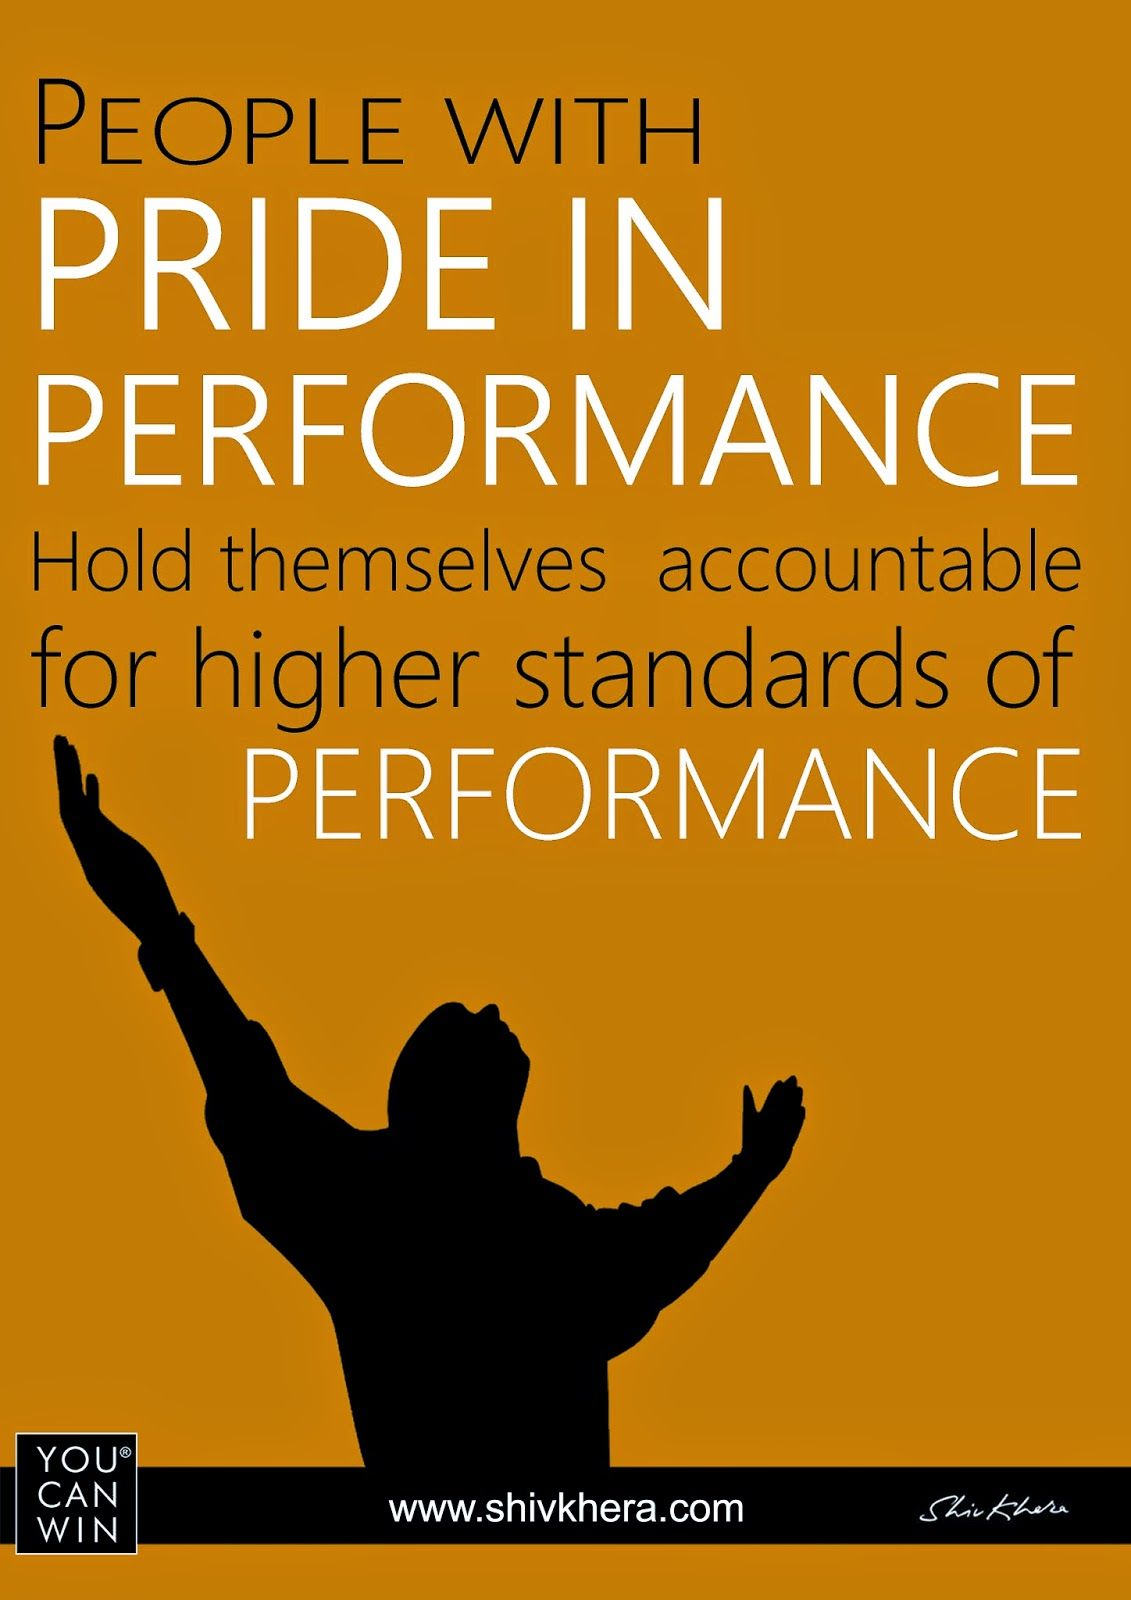 People with pride in performance hold themselves